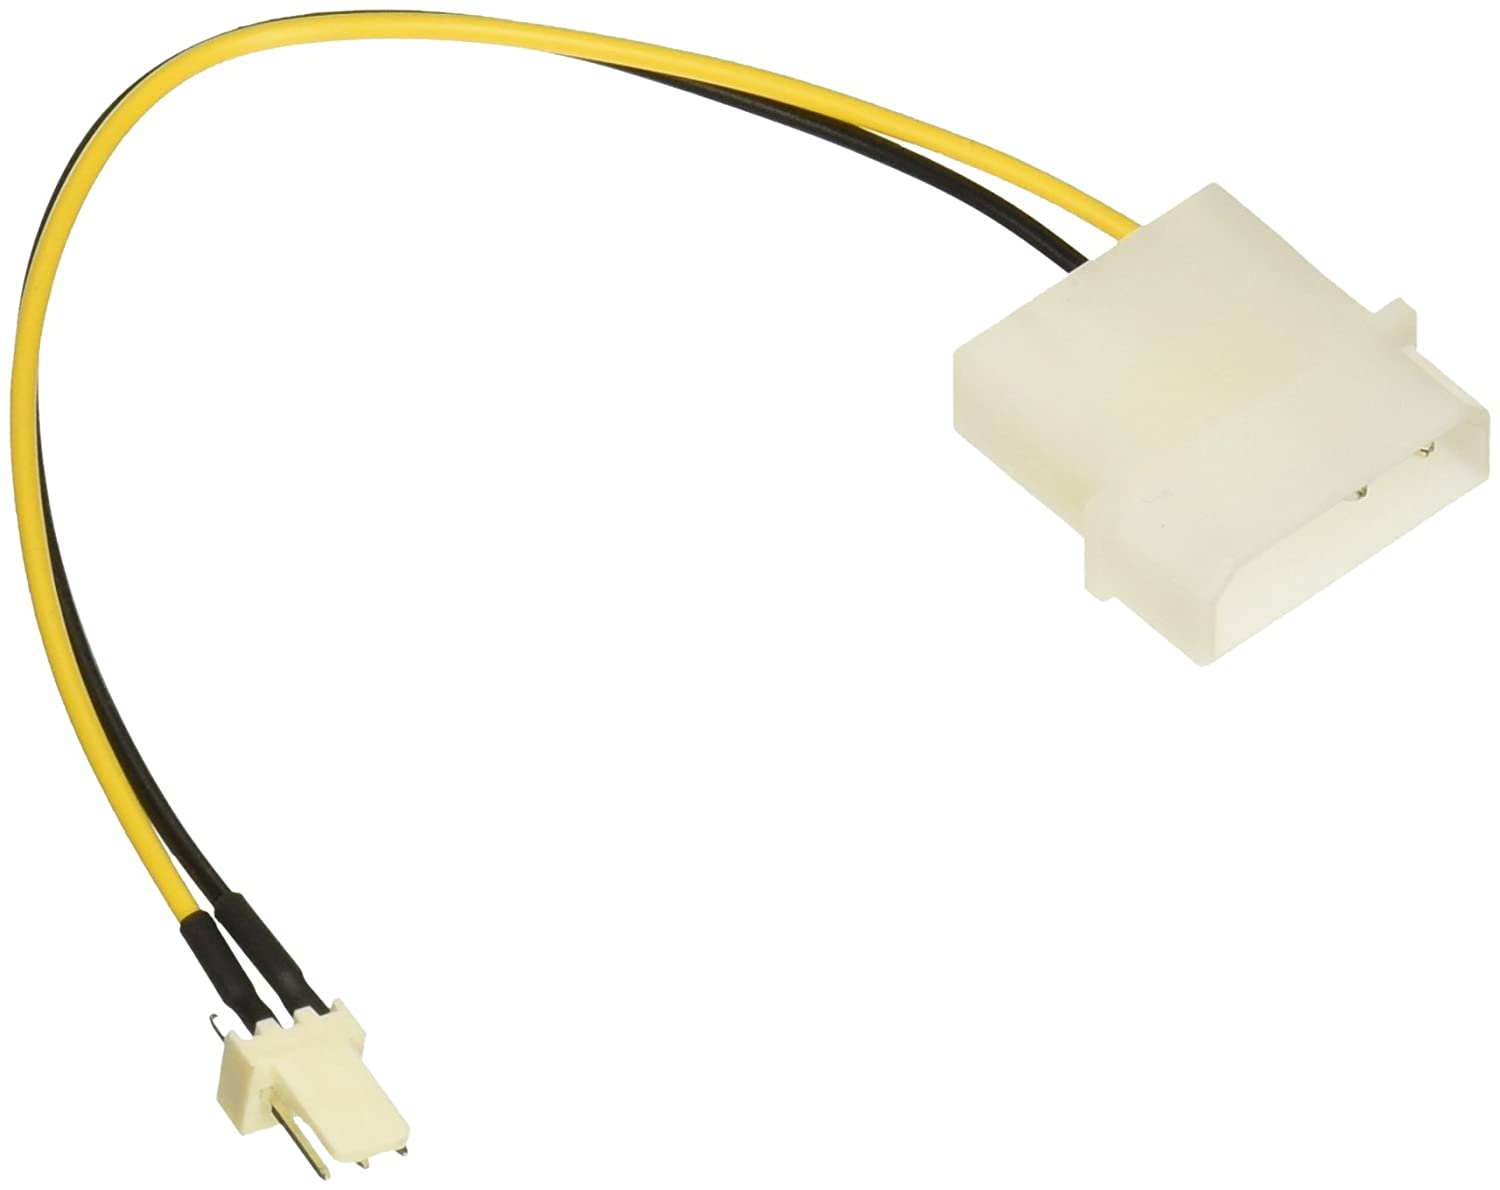 Cables To Go C2G 27077 3-Pin Fan to 4-Pin Power Adapter Cable 6 Inch